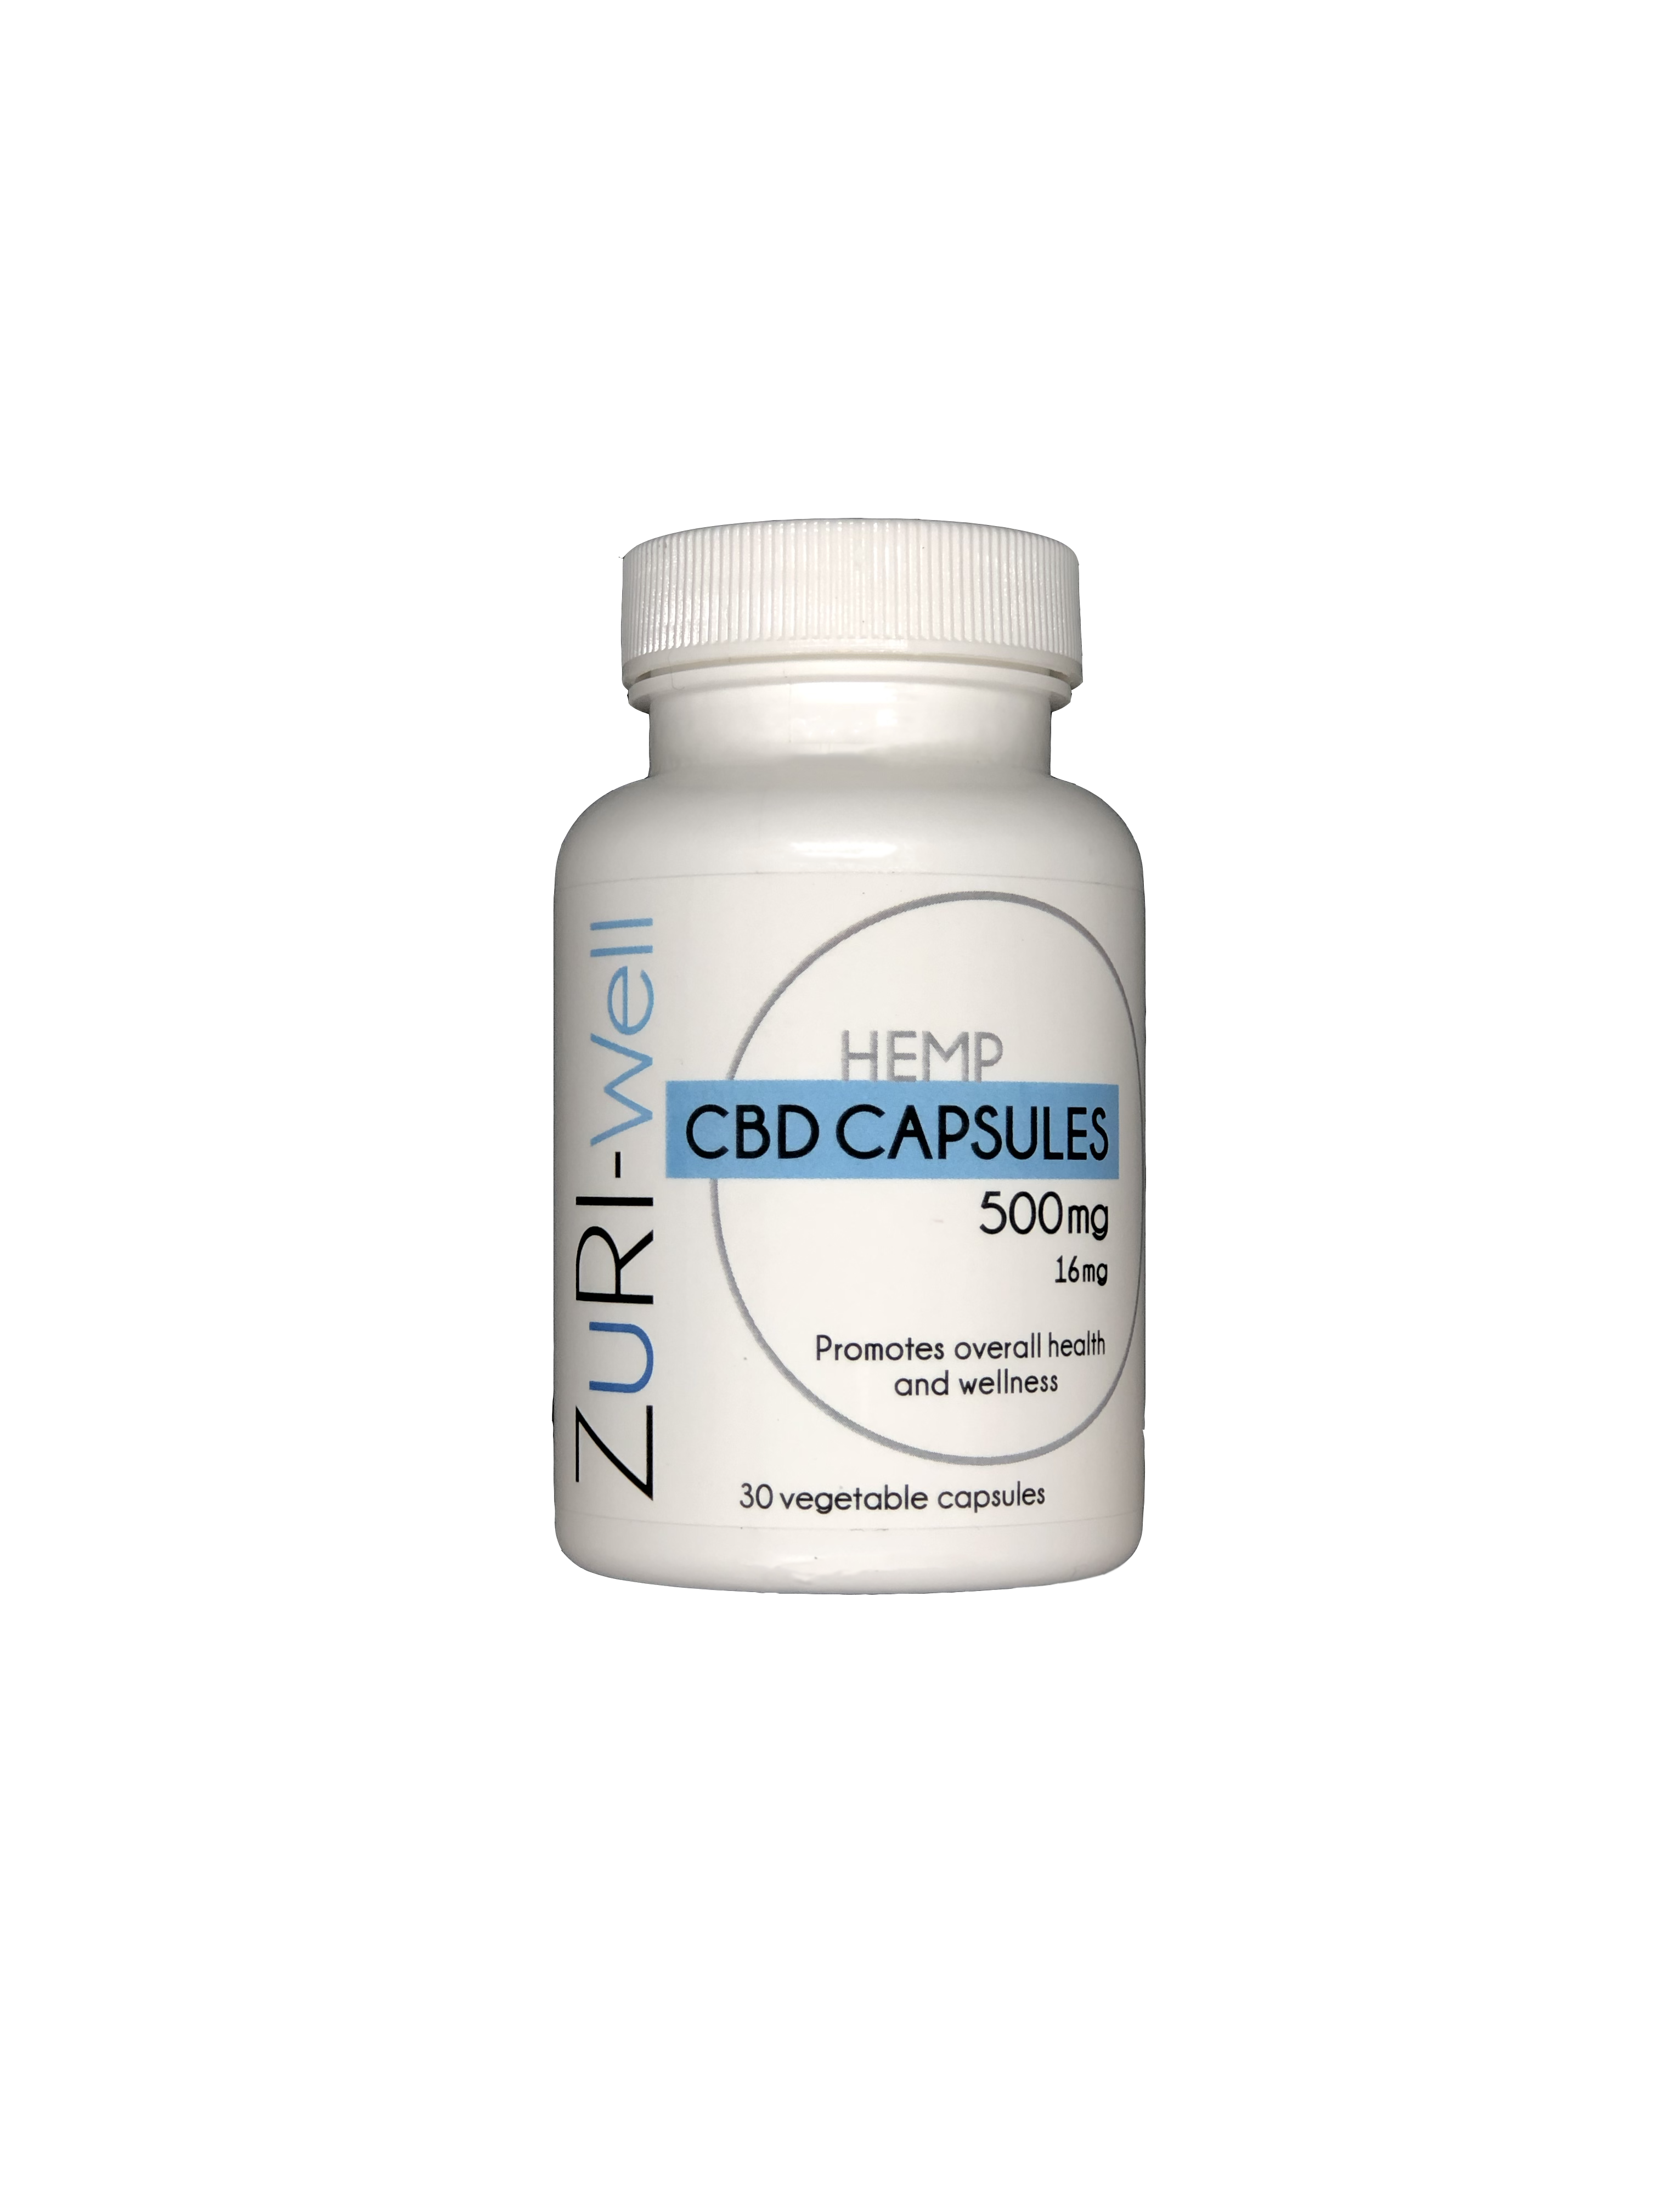 Daily 500mg CBD Capsules (30 Count)